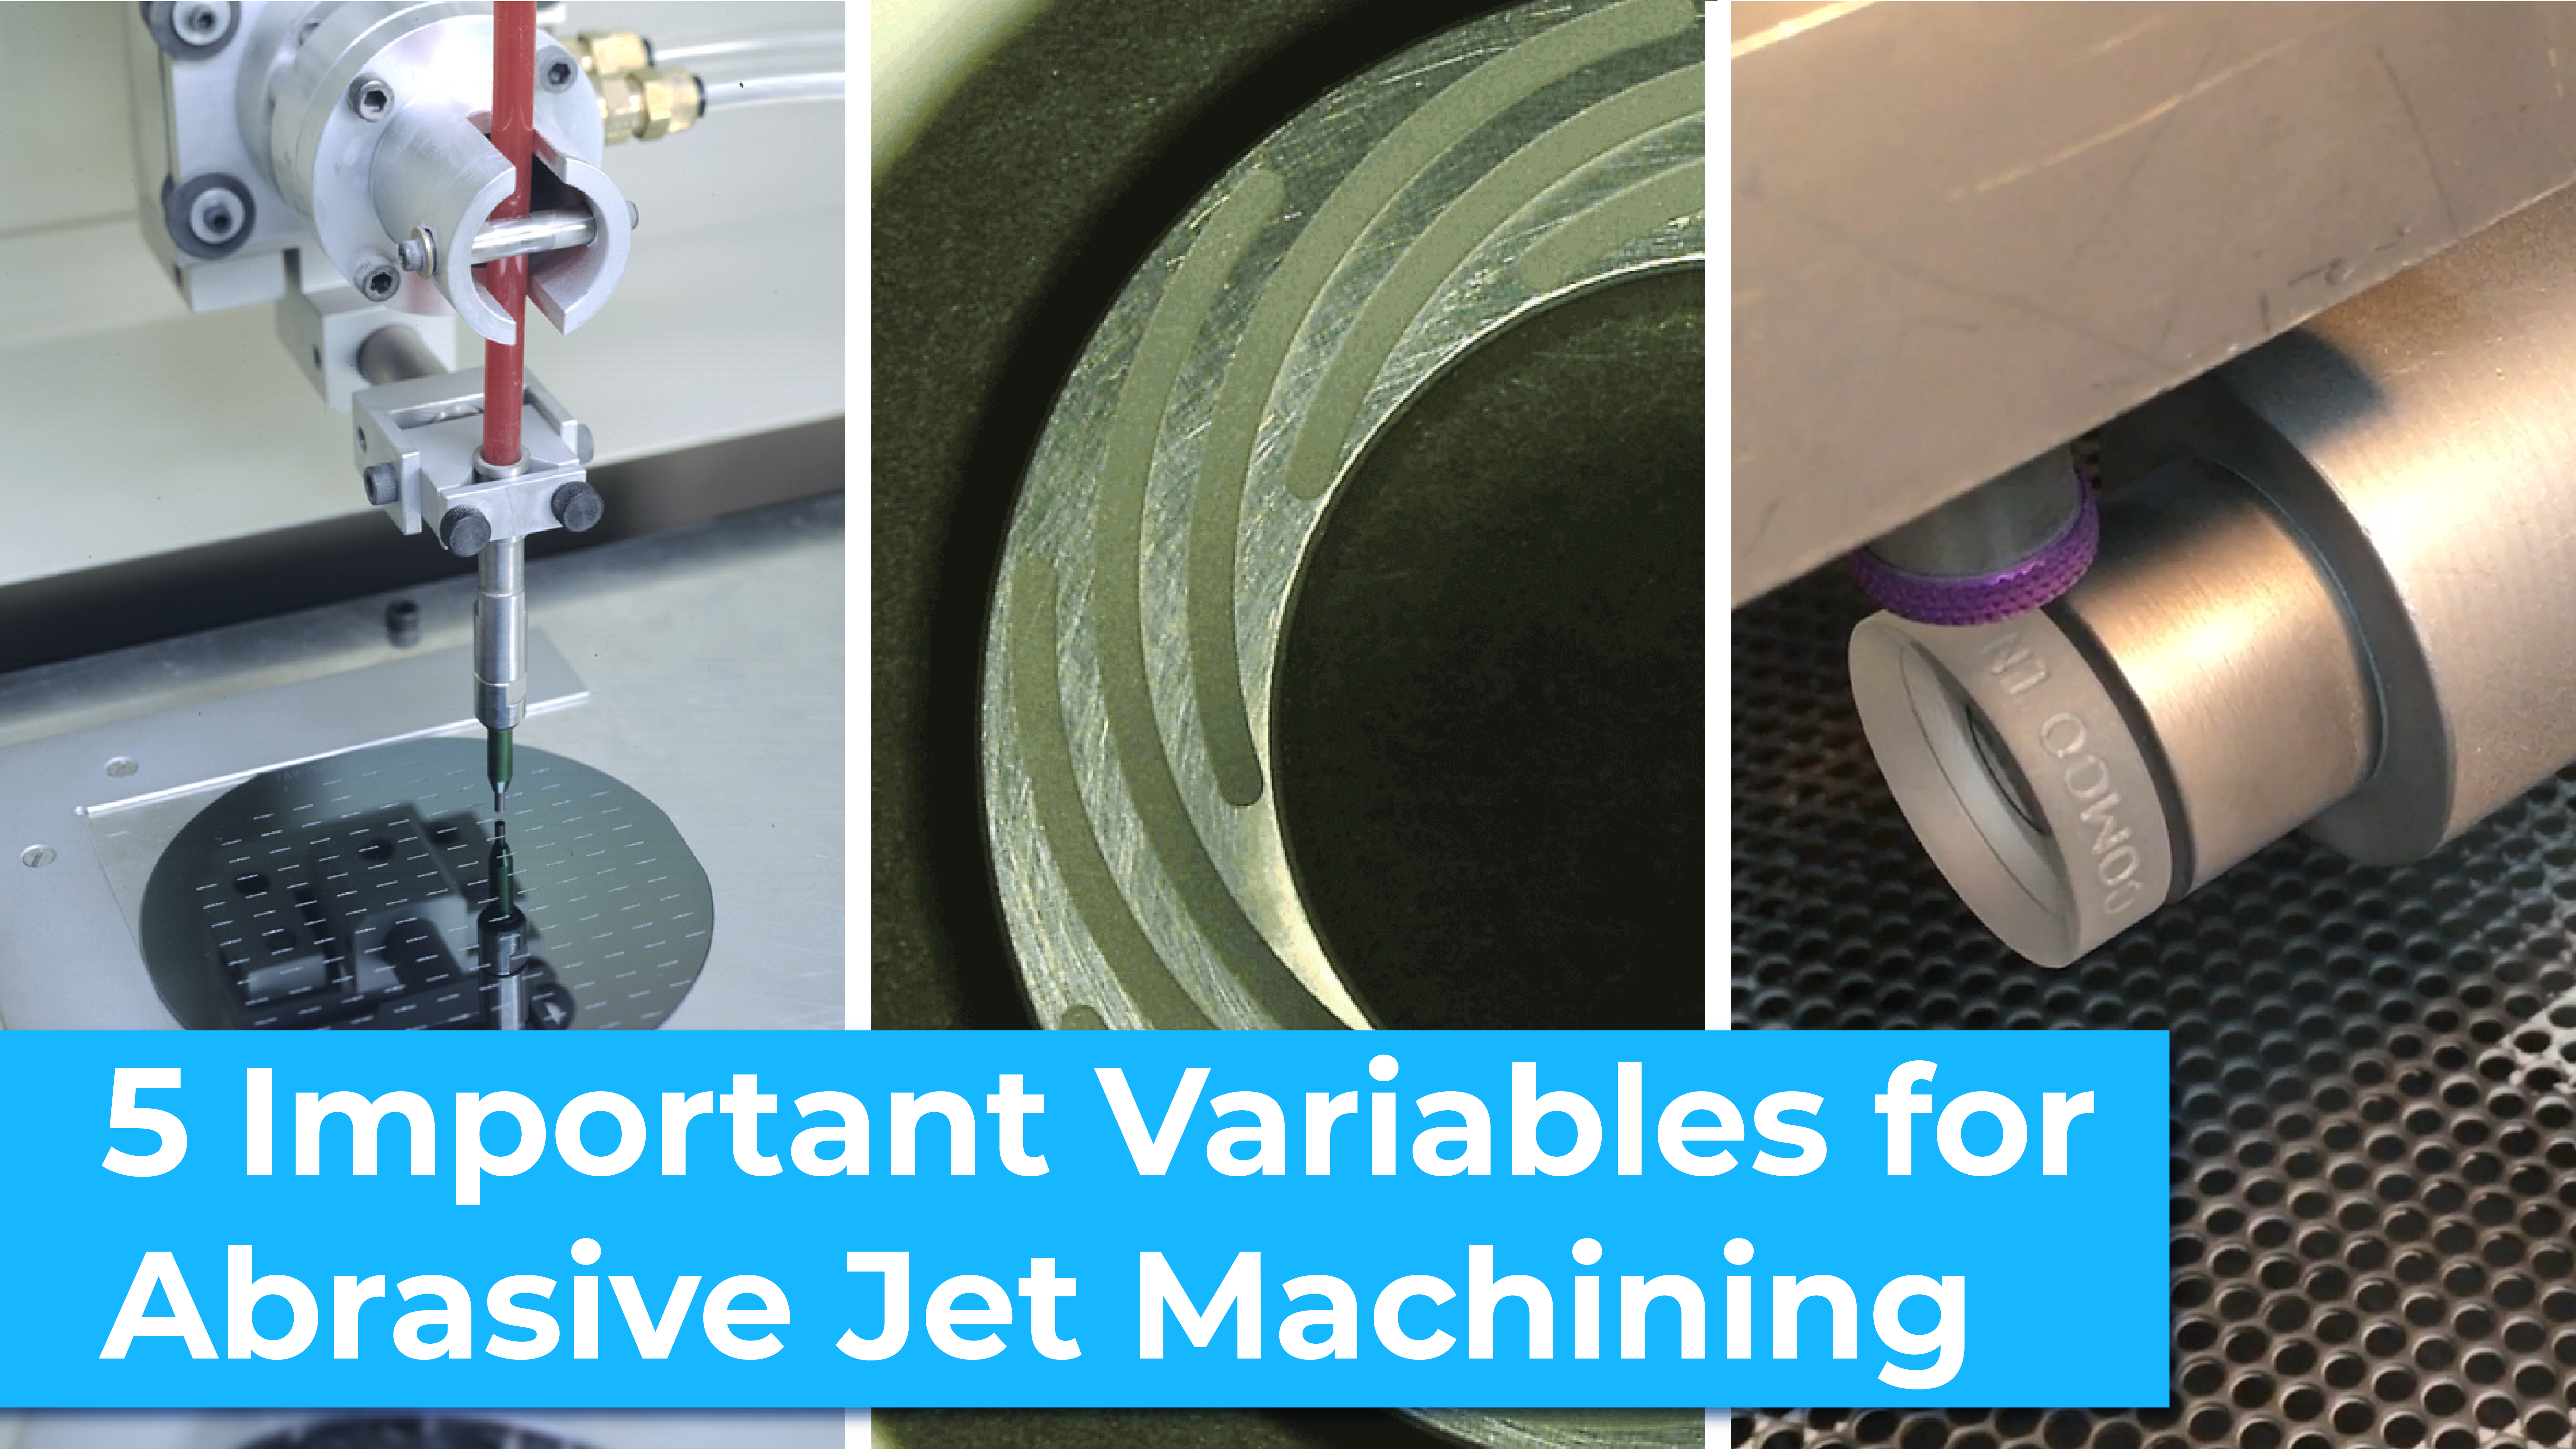 Collage of wafer cutting, a hydrodynamic seal, and lens engraving. Text: 5 Important Variables for Abrasive Jet Machining